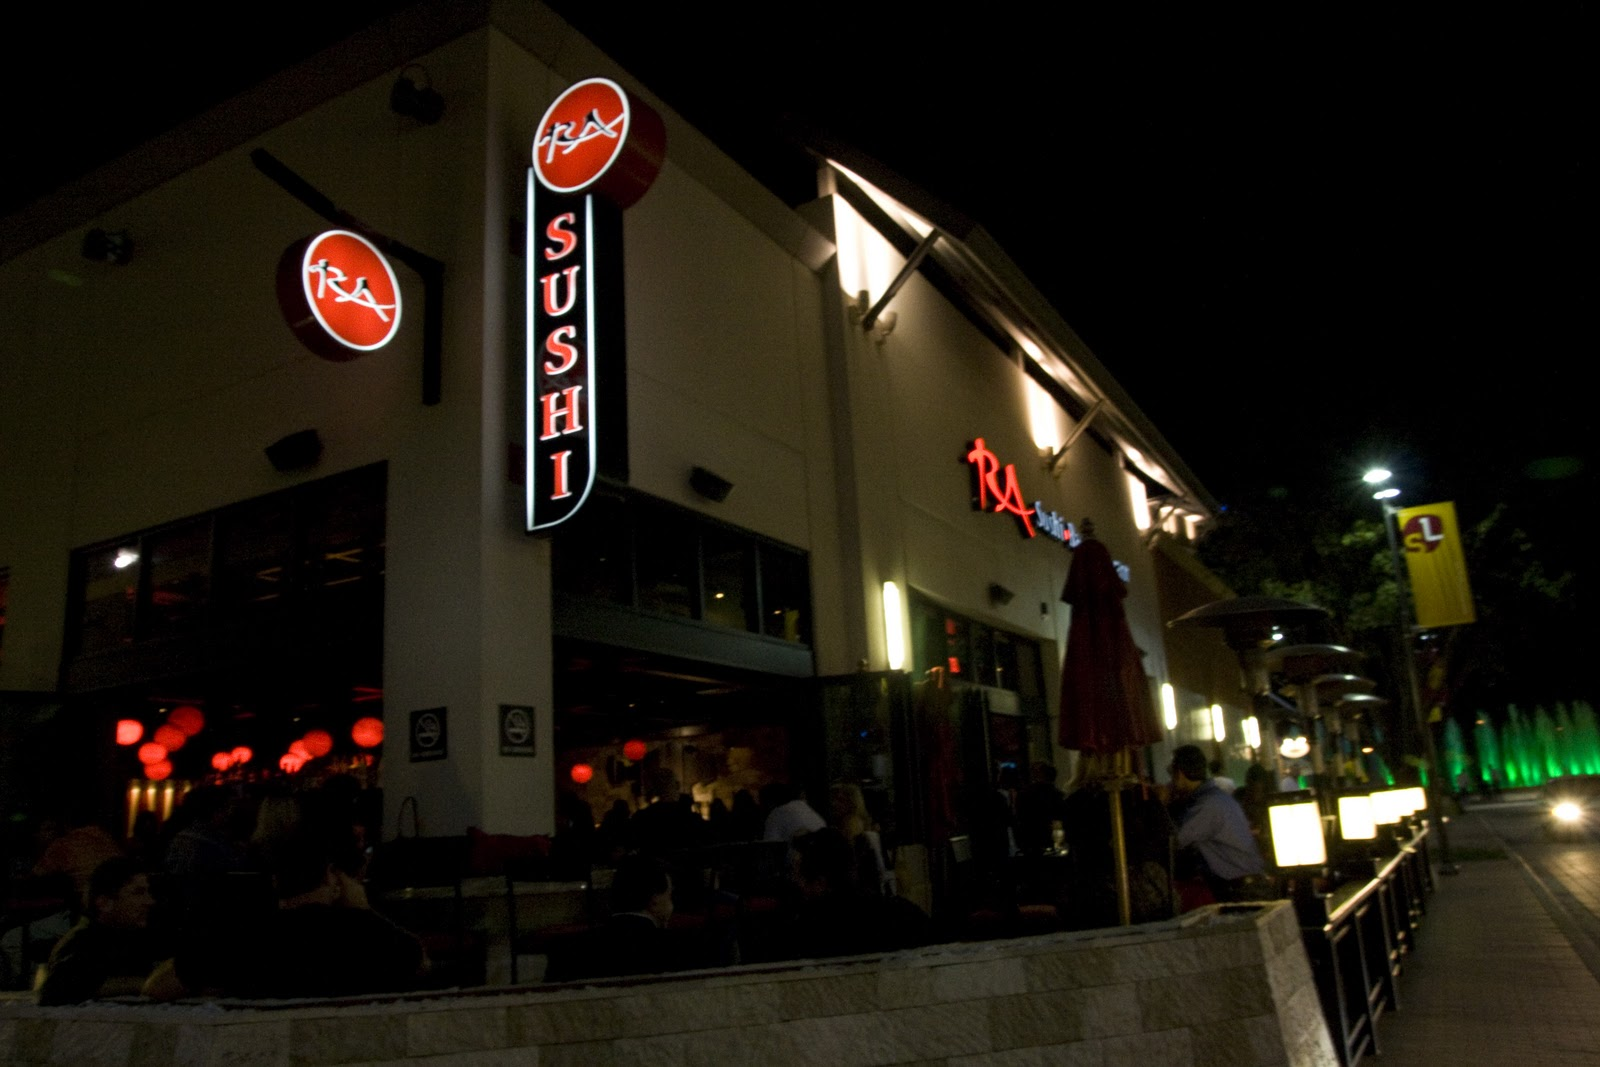 ra sushi s happy hour dallas tx a taste of koko austin s ra sushi opened its first location in old town scottsdale in 1997 benihana acquired scottsdale based ra sushi in 2002 and has now expanded